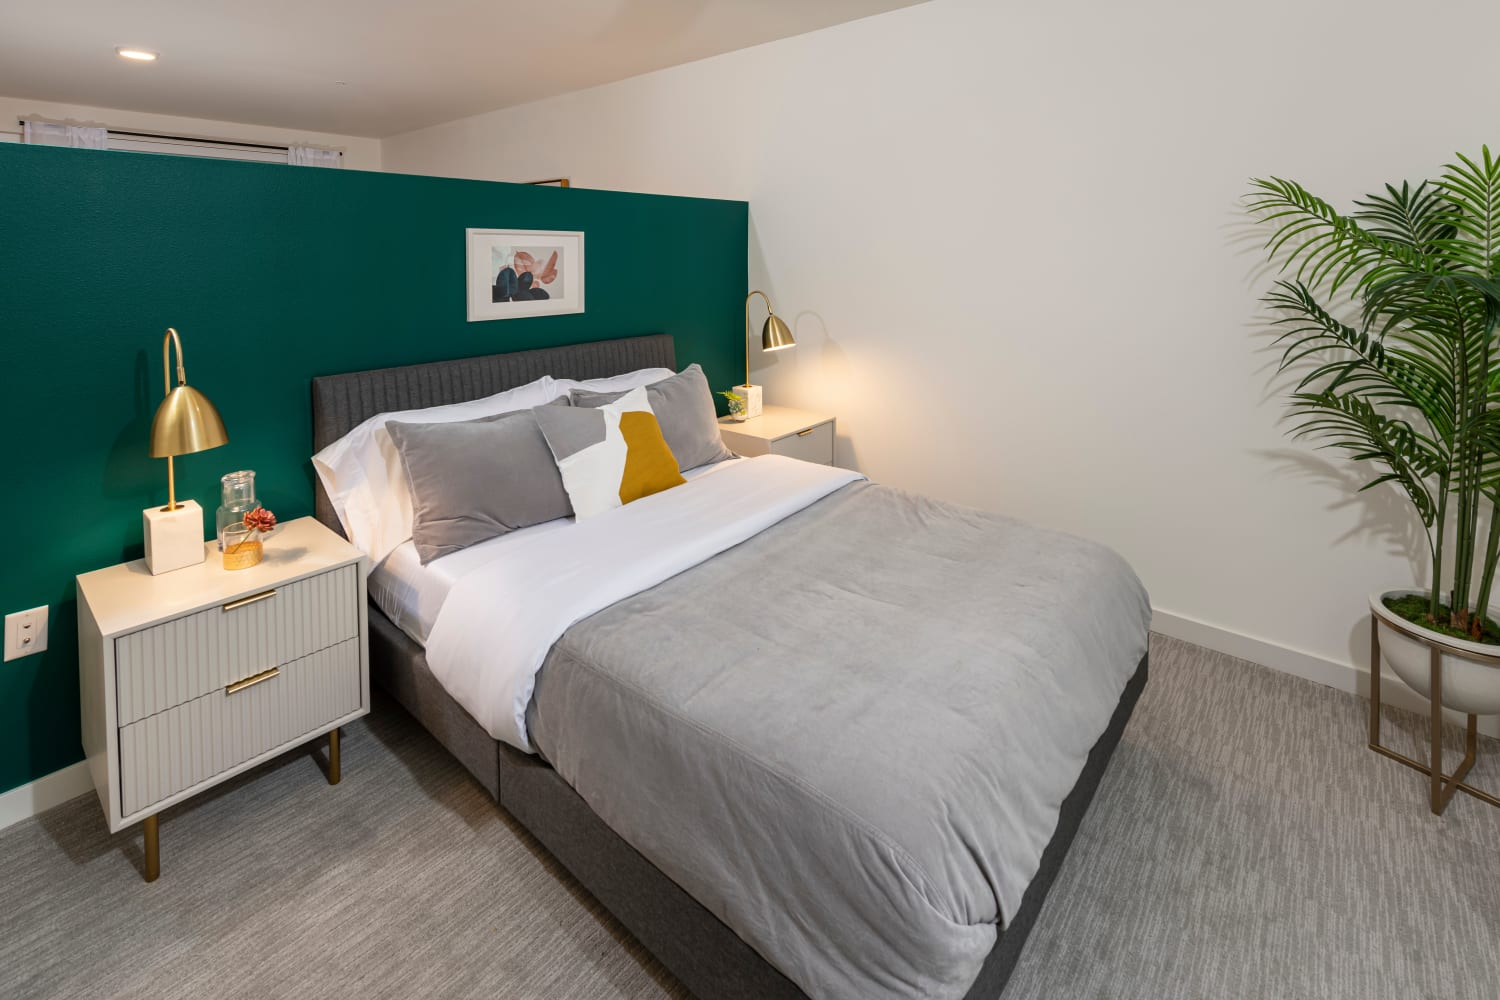 Model apartment bedroom with plenty of natural light at Nightingale in Redmond, Washington